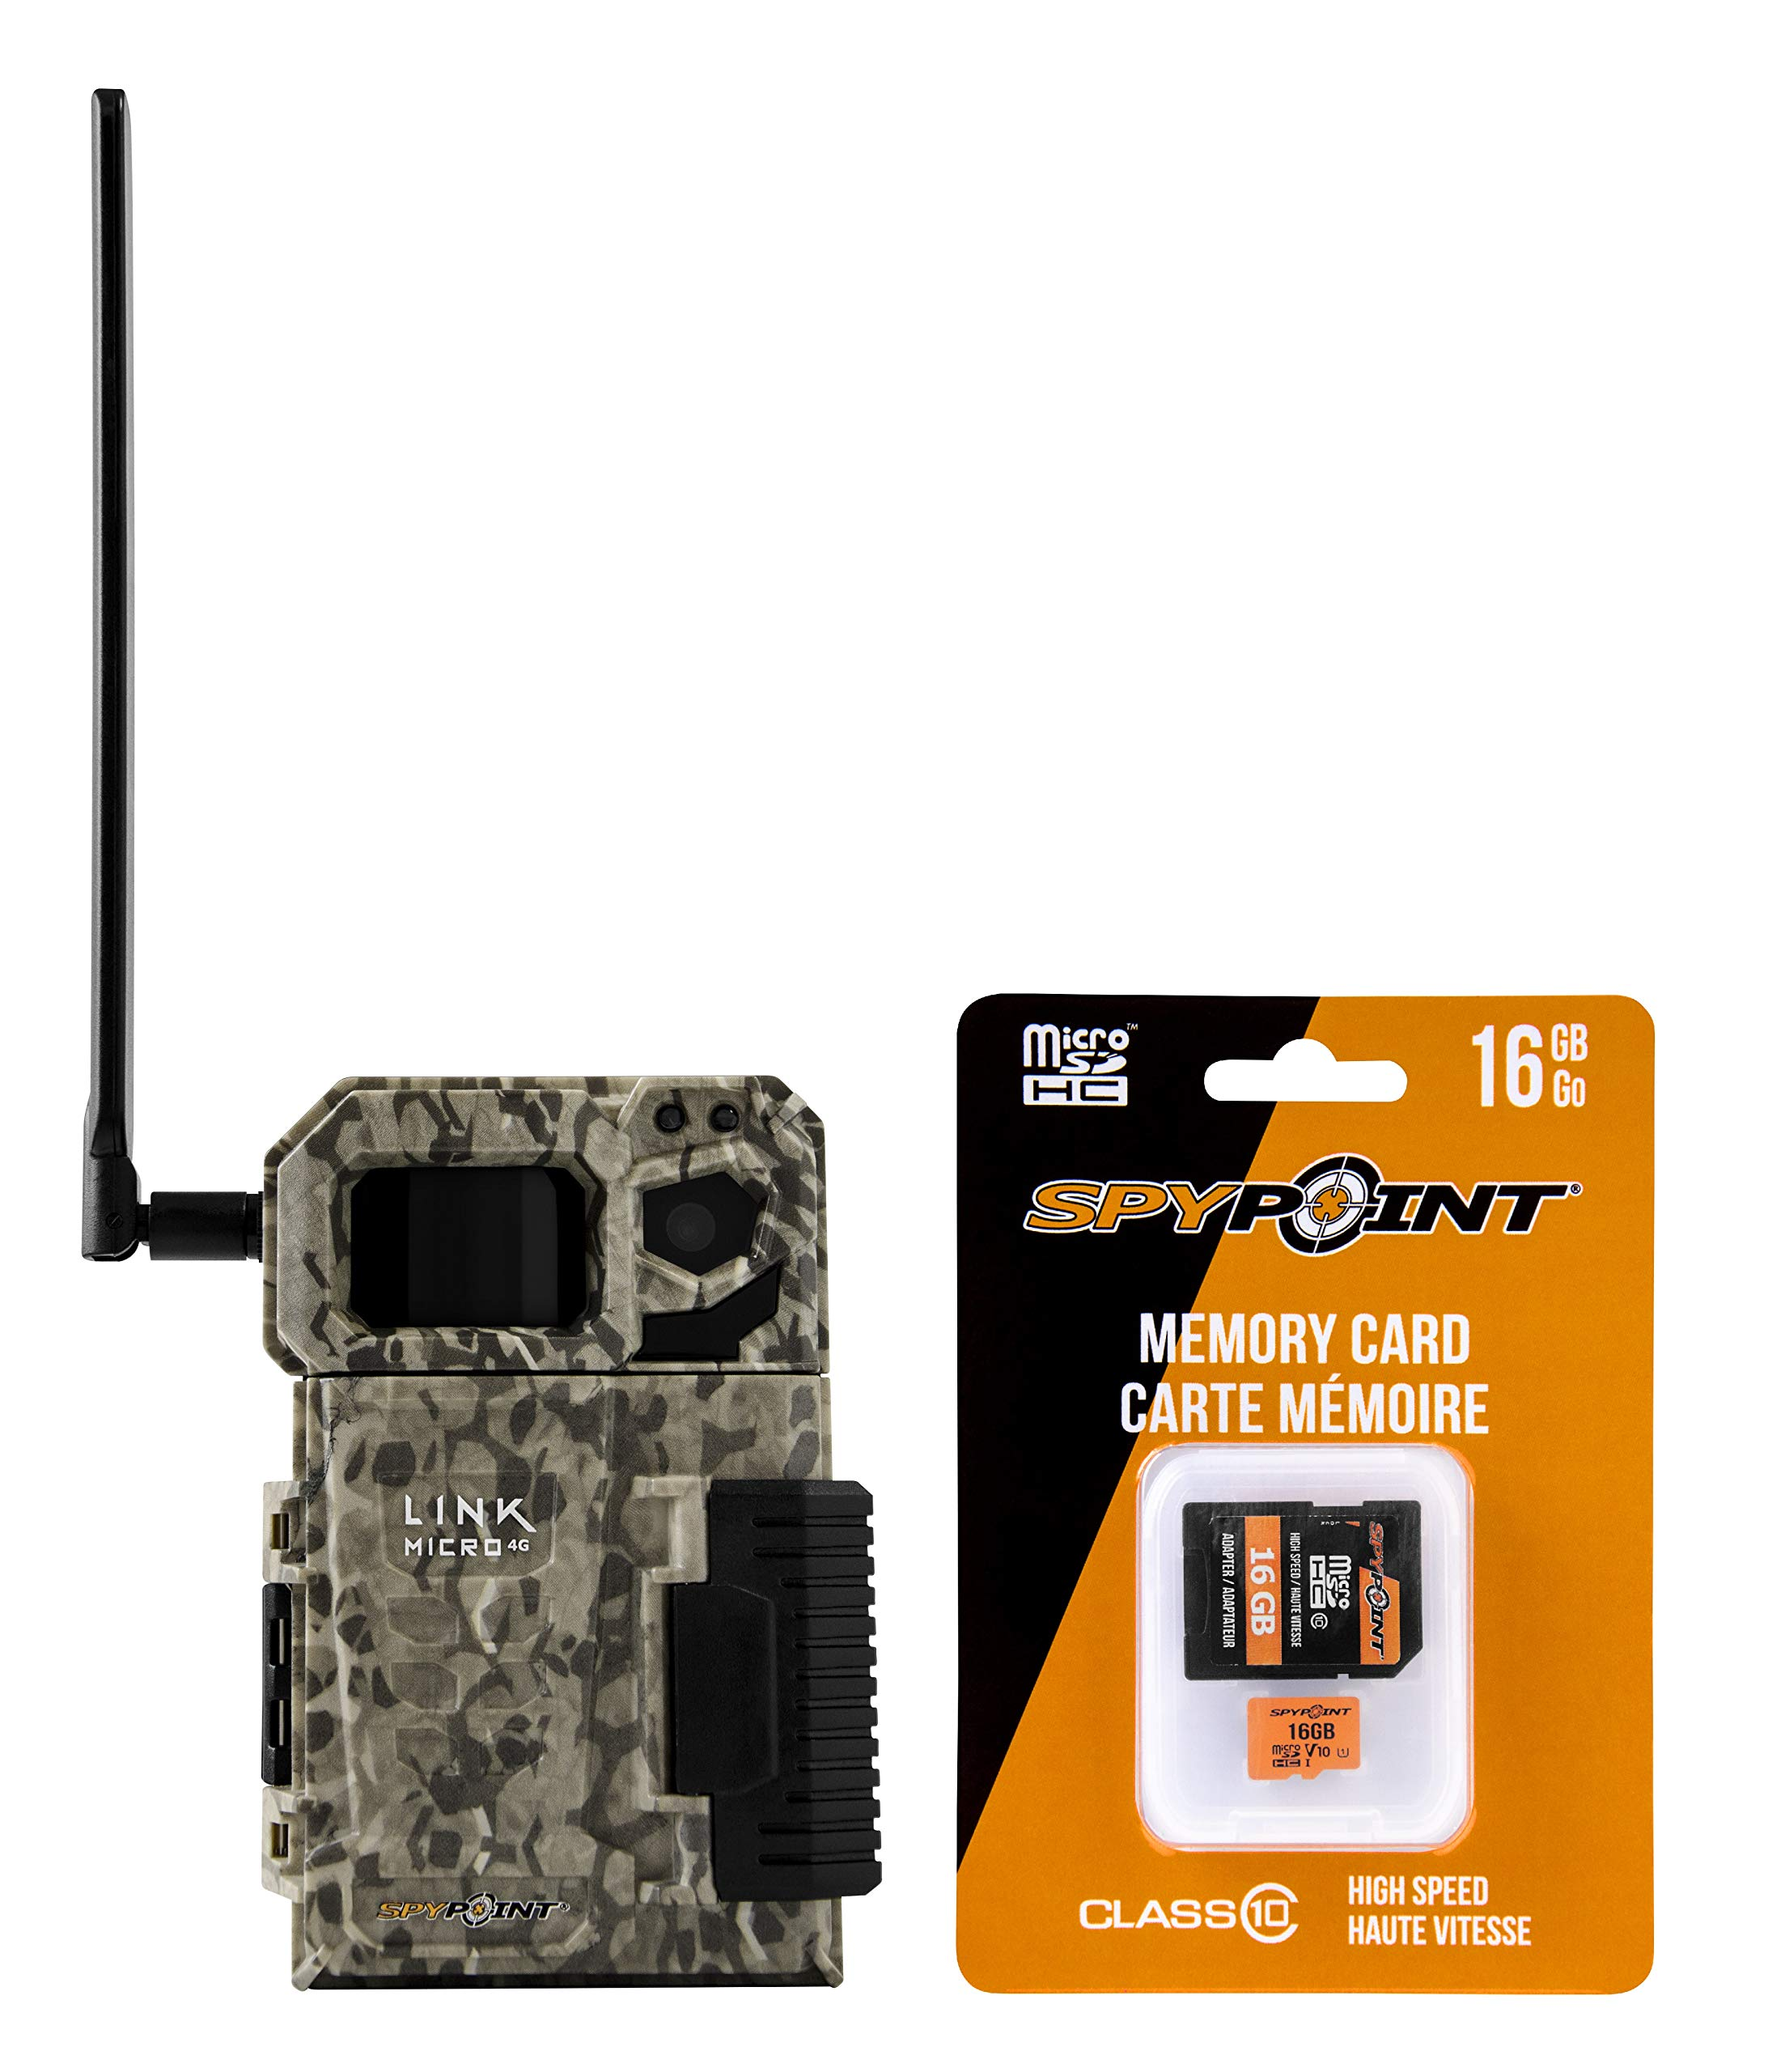 SPYPOINT LINK MICRO with 16GB MicroSD (Smallest on The Market!) Wireless/Cell Trail Camera, 4 Power LEDs, Fast 4G Photo Transmission w/Preactivated SIM, Fully Configurable via App (Nationwide Version) by SPYPOINT